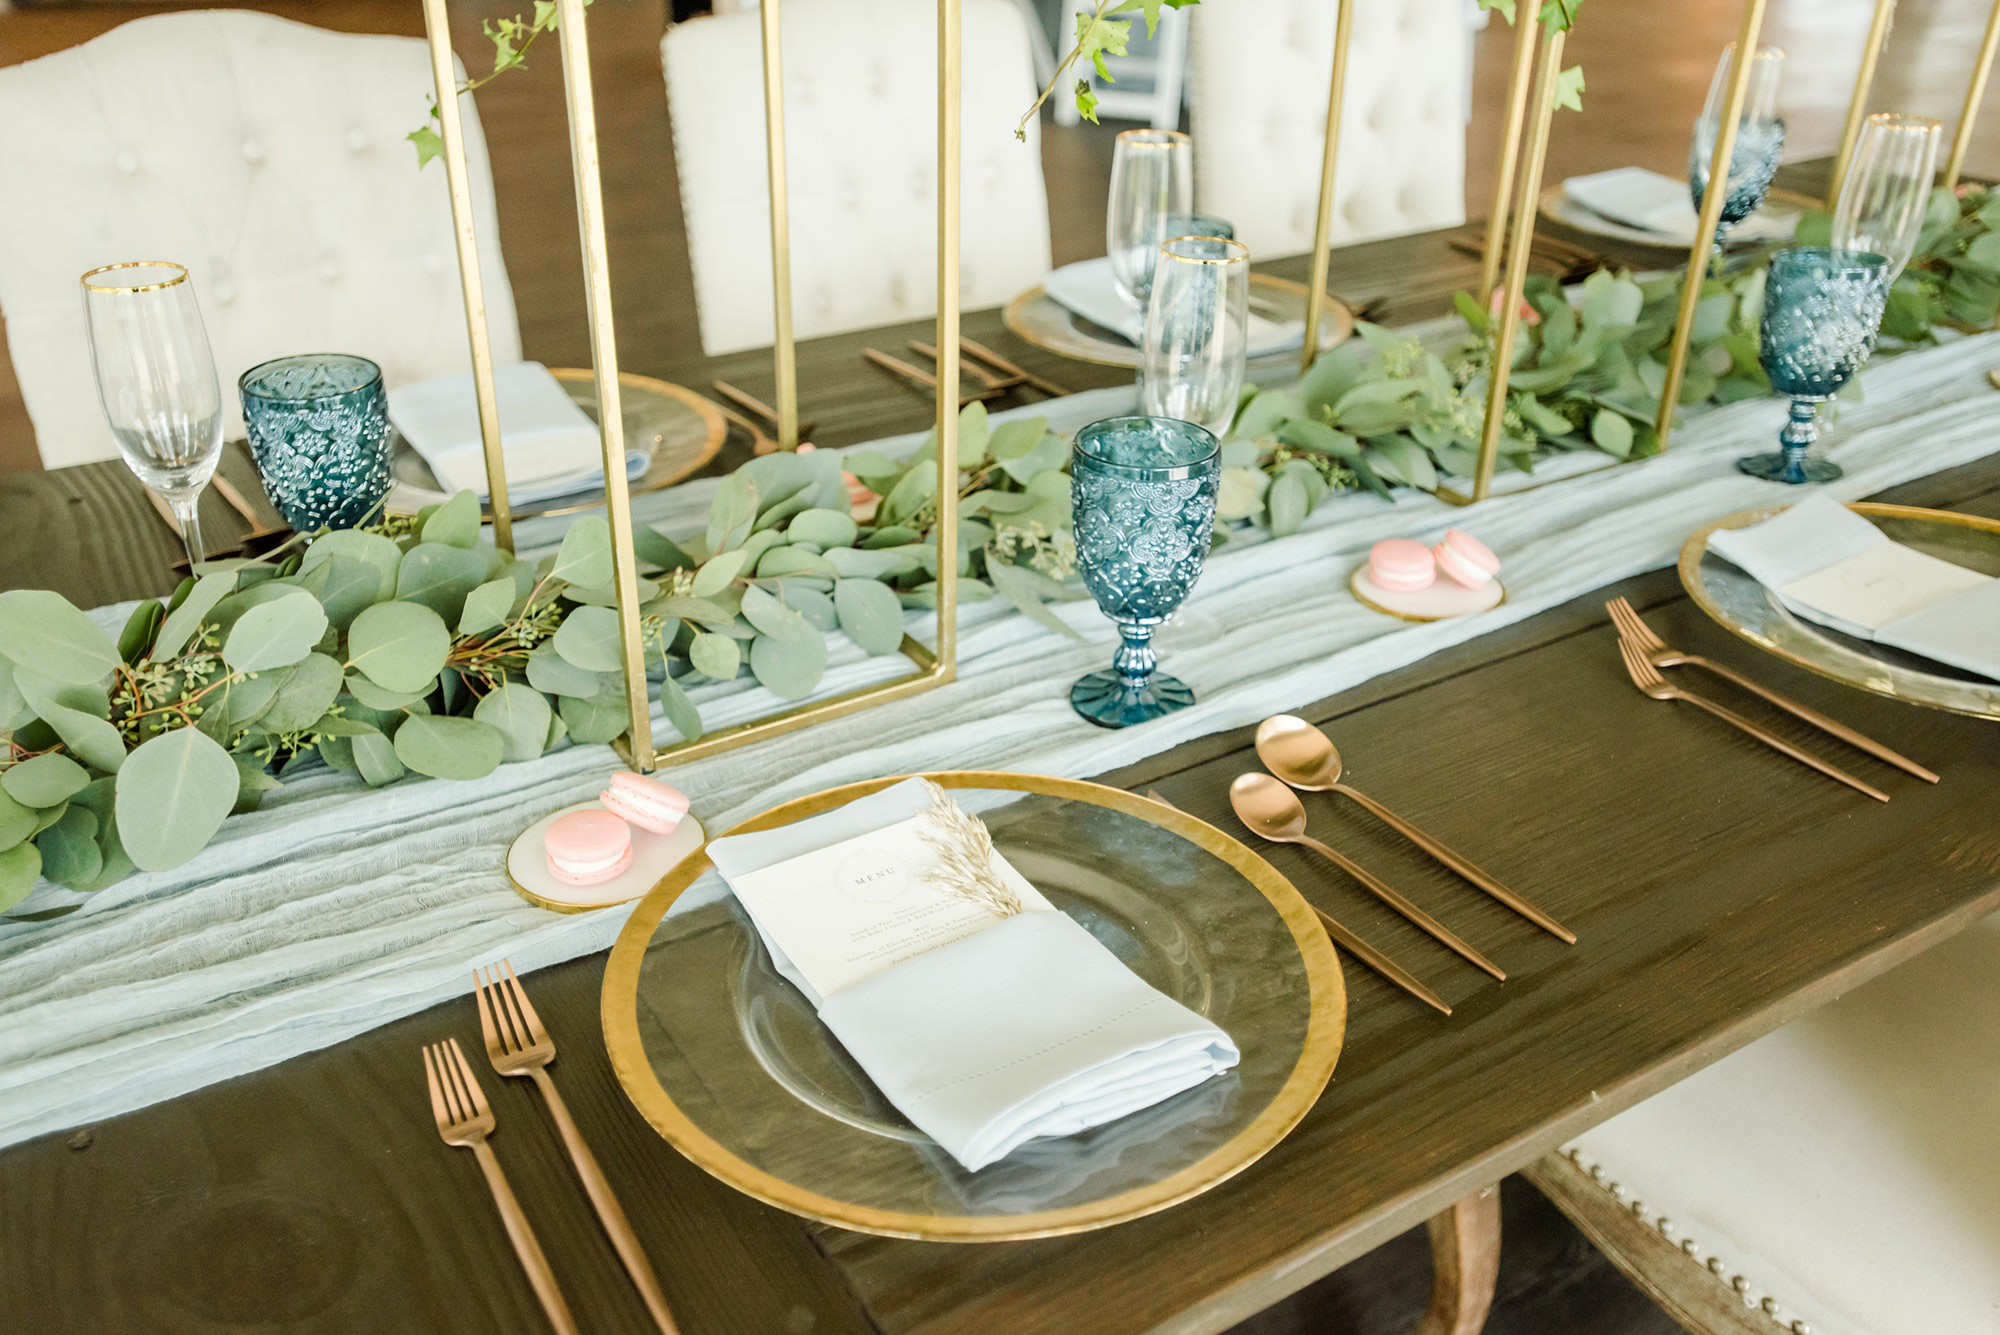 Dusty Rose Styled Wedding Shoot, Clear Glass and Gold Rimmed Chargers, White Linens with Custom Stationary, Eucalyptus Greenery Garland and White Fabric Table Runner, Blue Wine Glasses, Rose Gold Flatware, Pink Macaroons   Tampa Bay Wedding Planner Elegant Affairs by Design